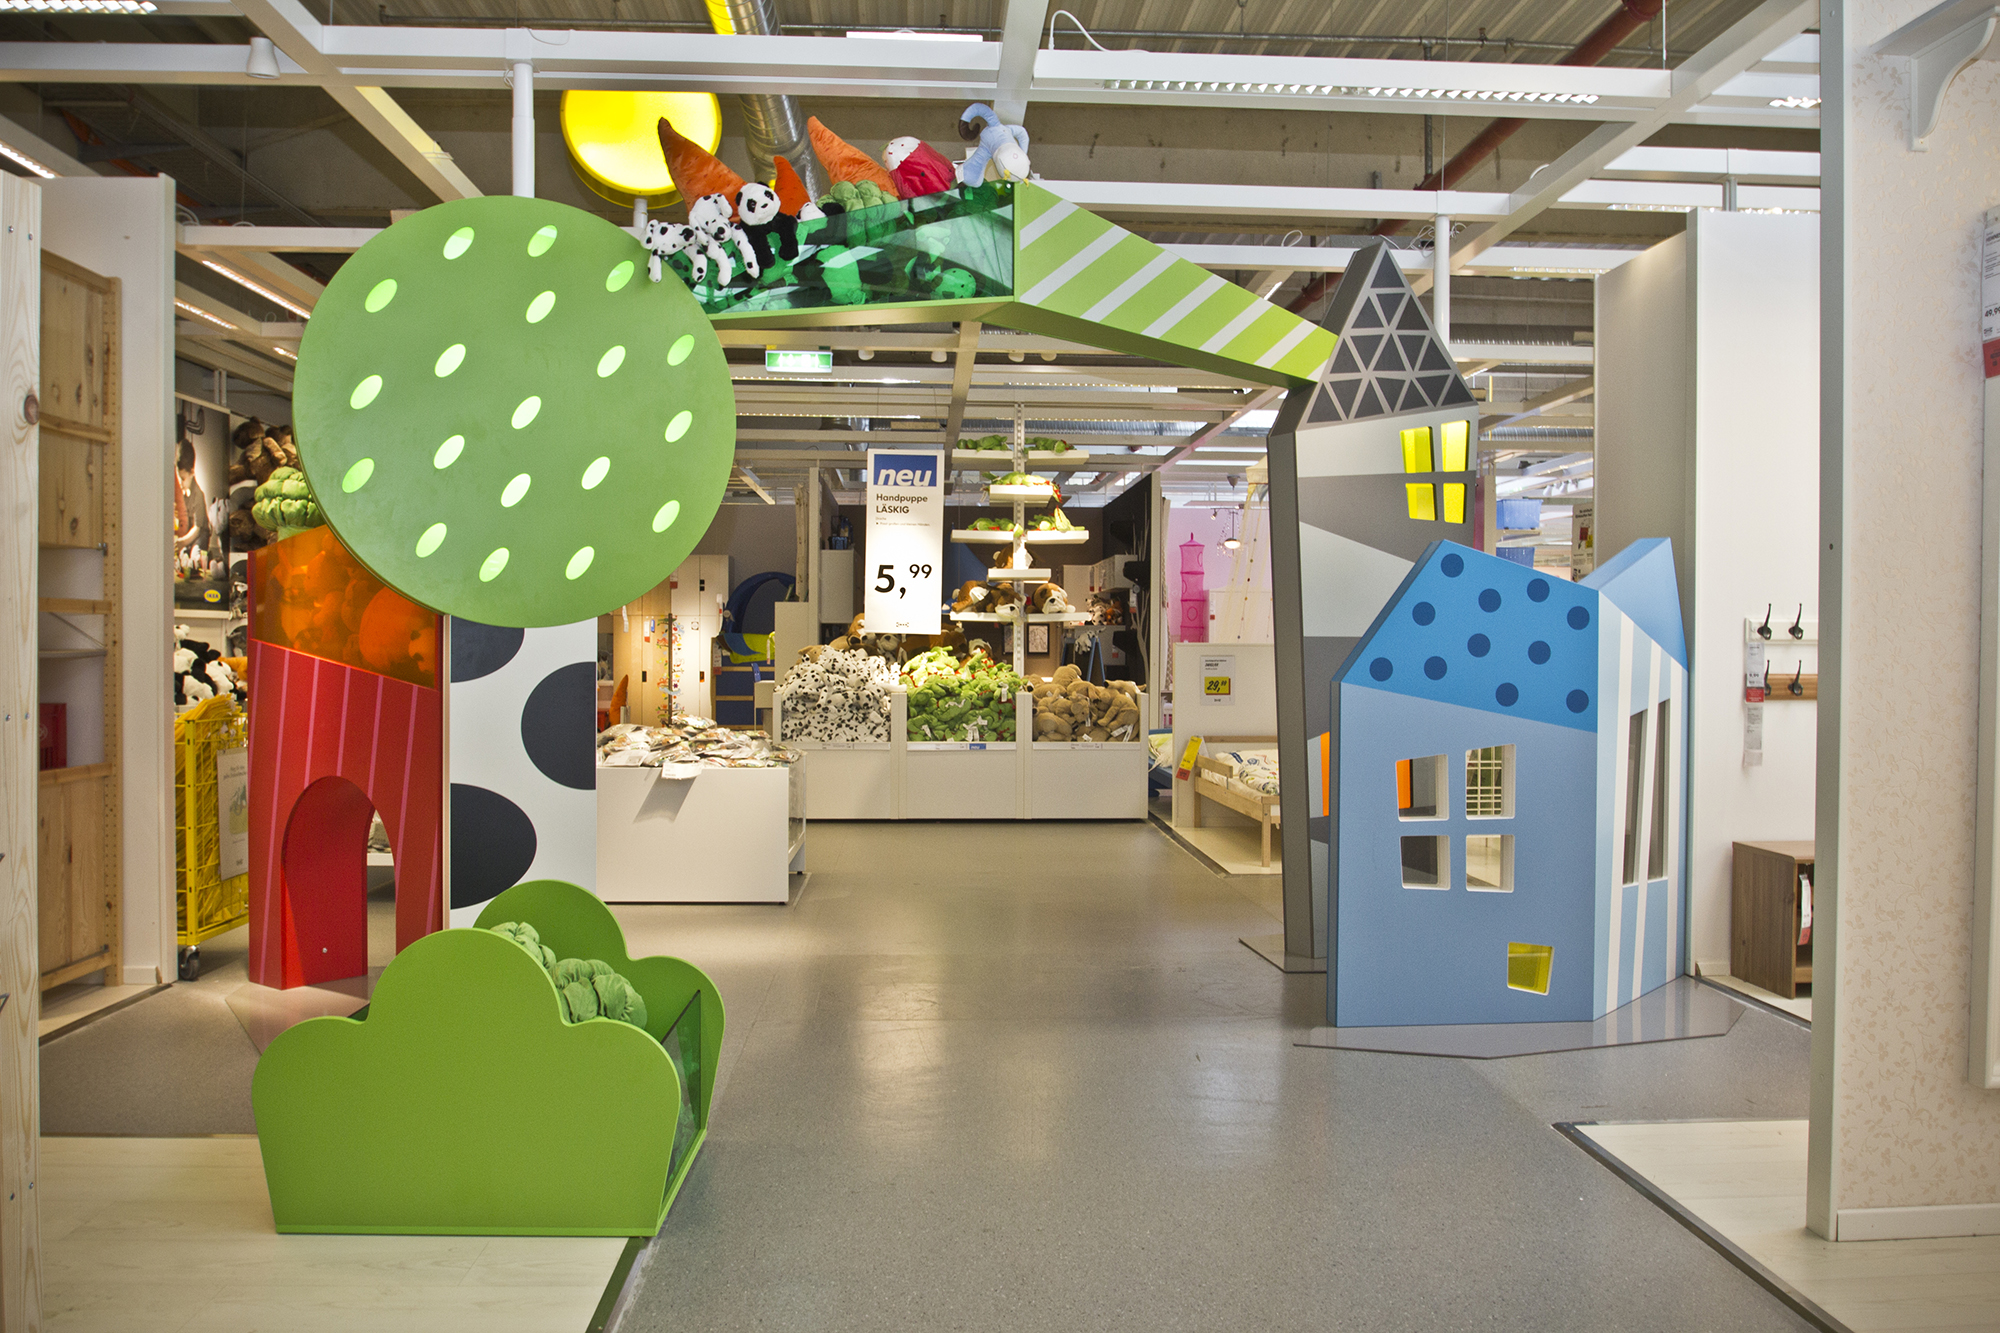 Childrens_IKEA_entrance_2.jpg